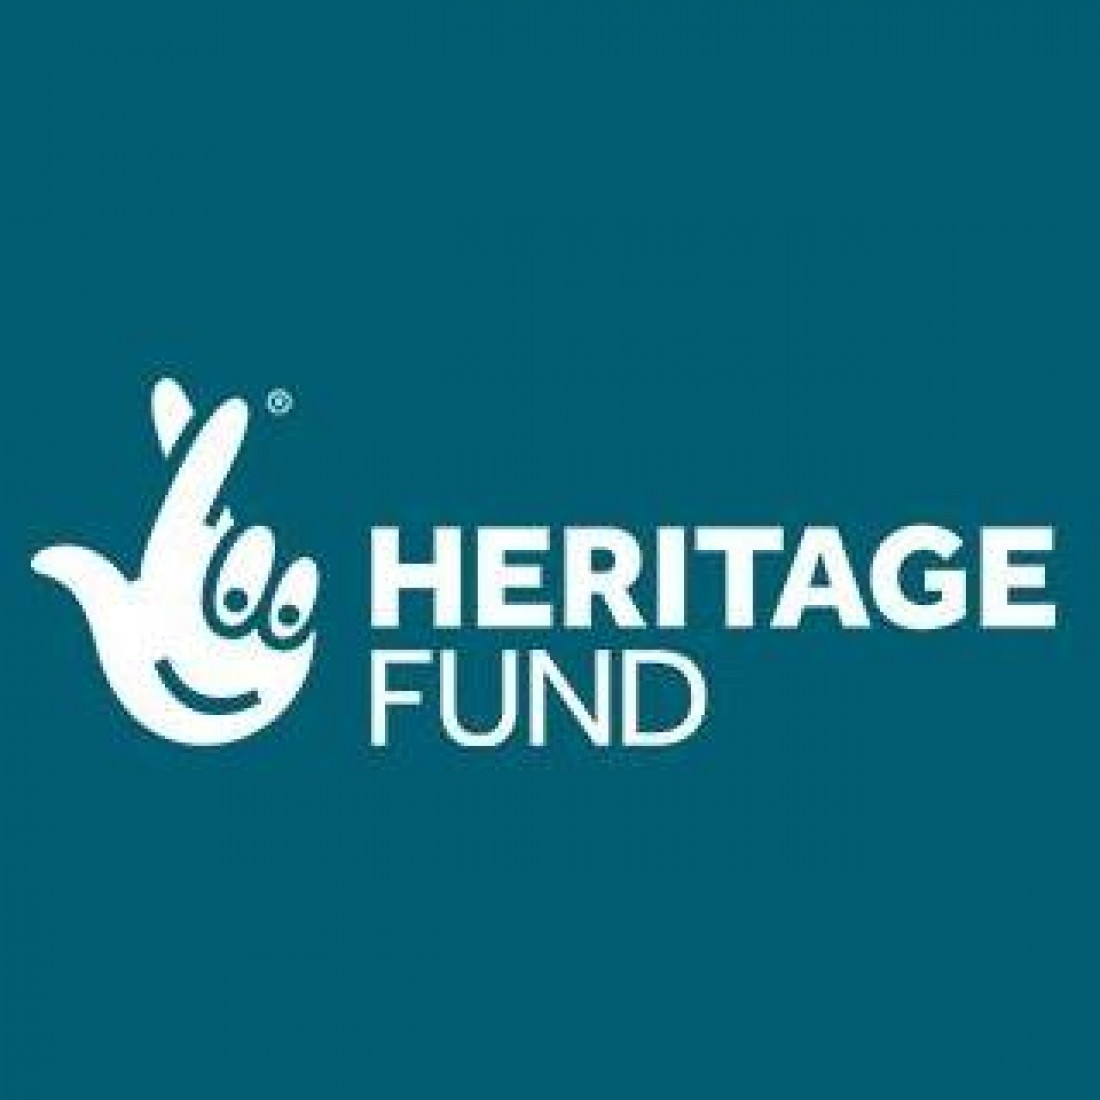 Shared History Fund: bringing people together to mark Centenary of Northern Ireland